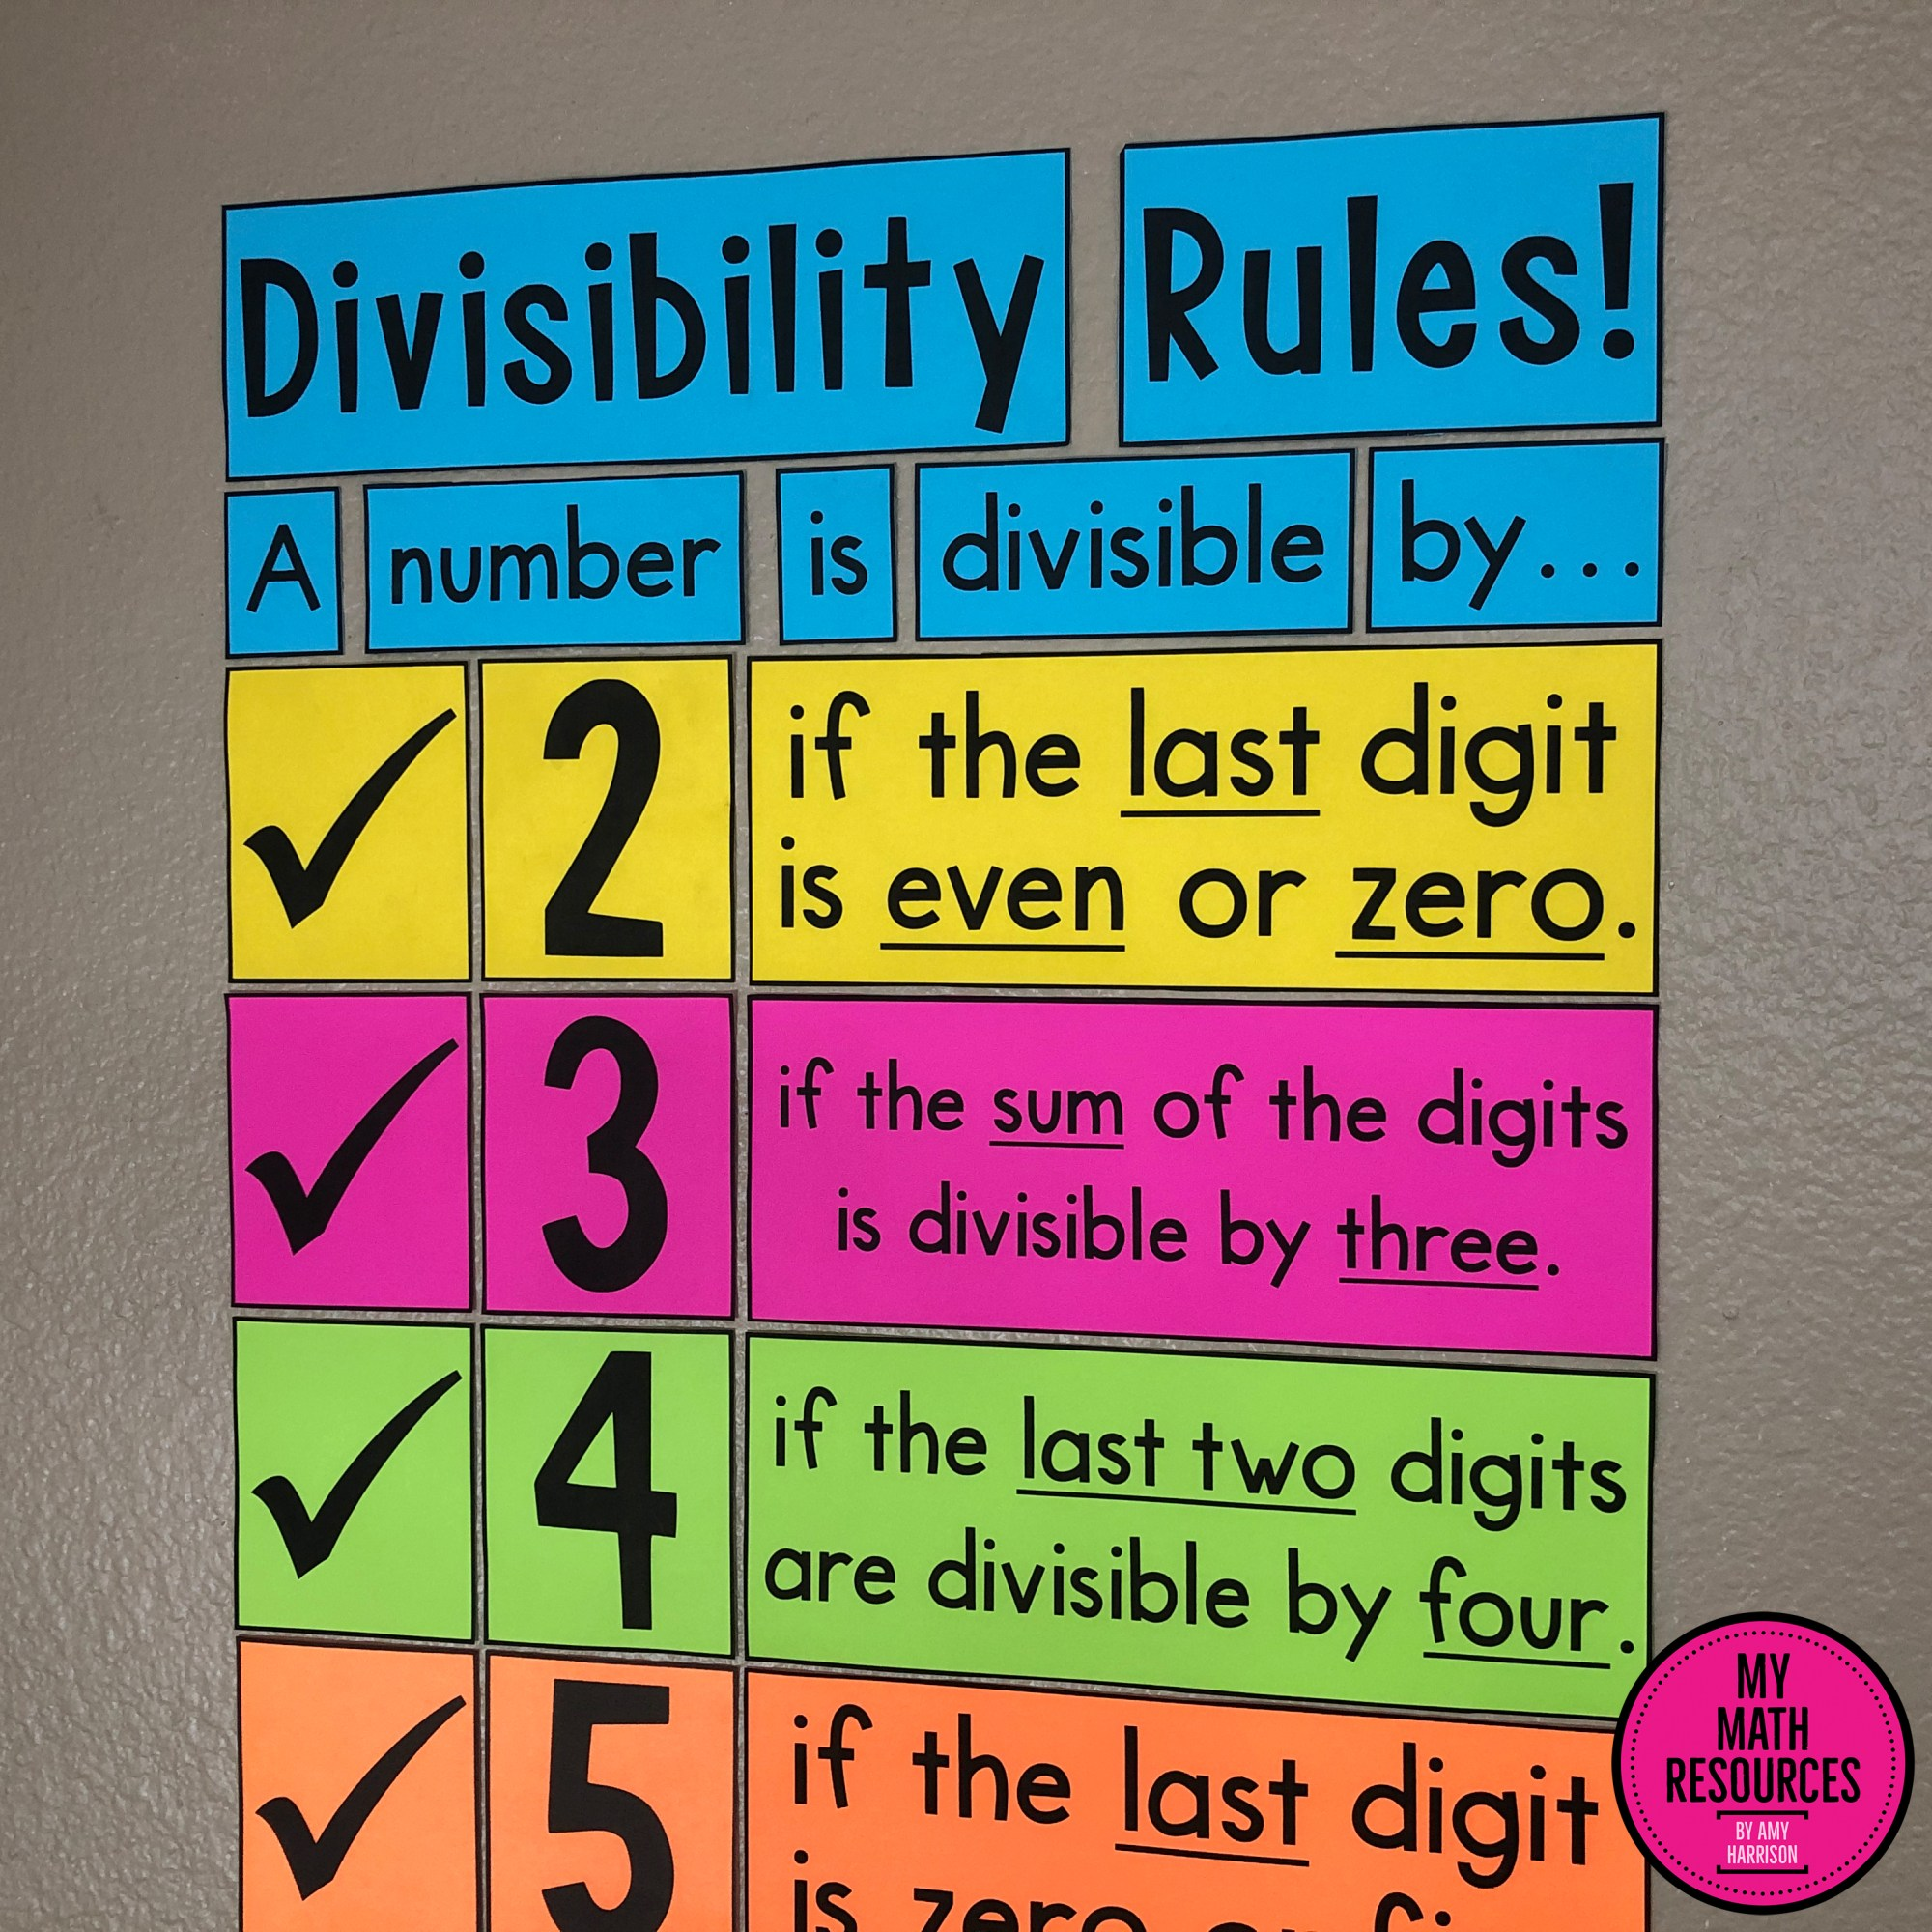 hight resolution of divisibility rules chart for 6th grade - Verse